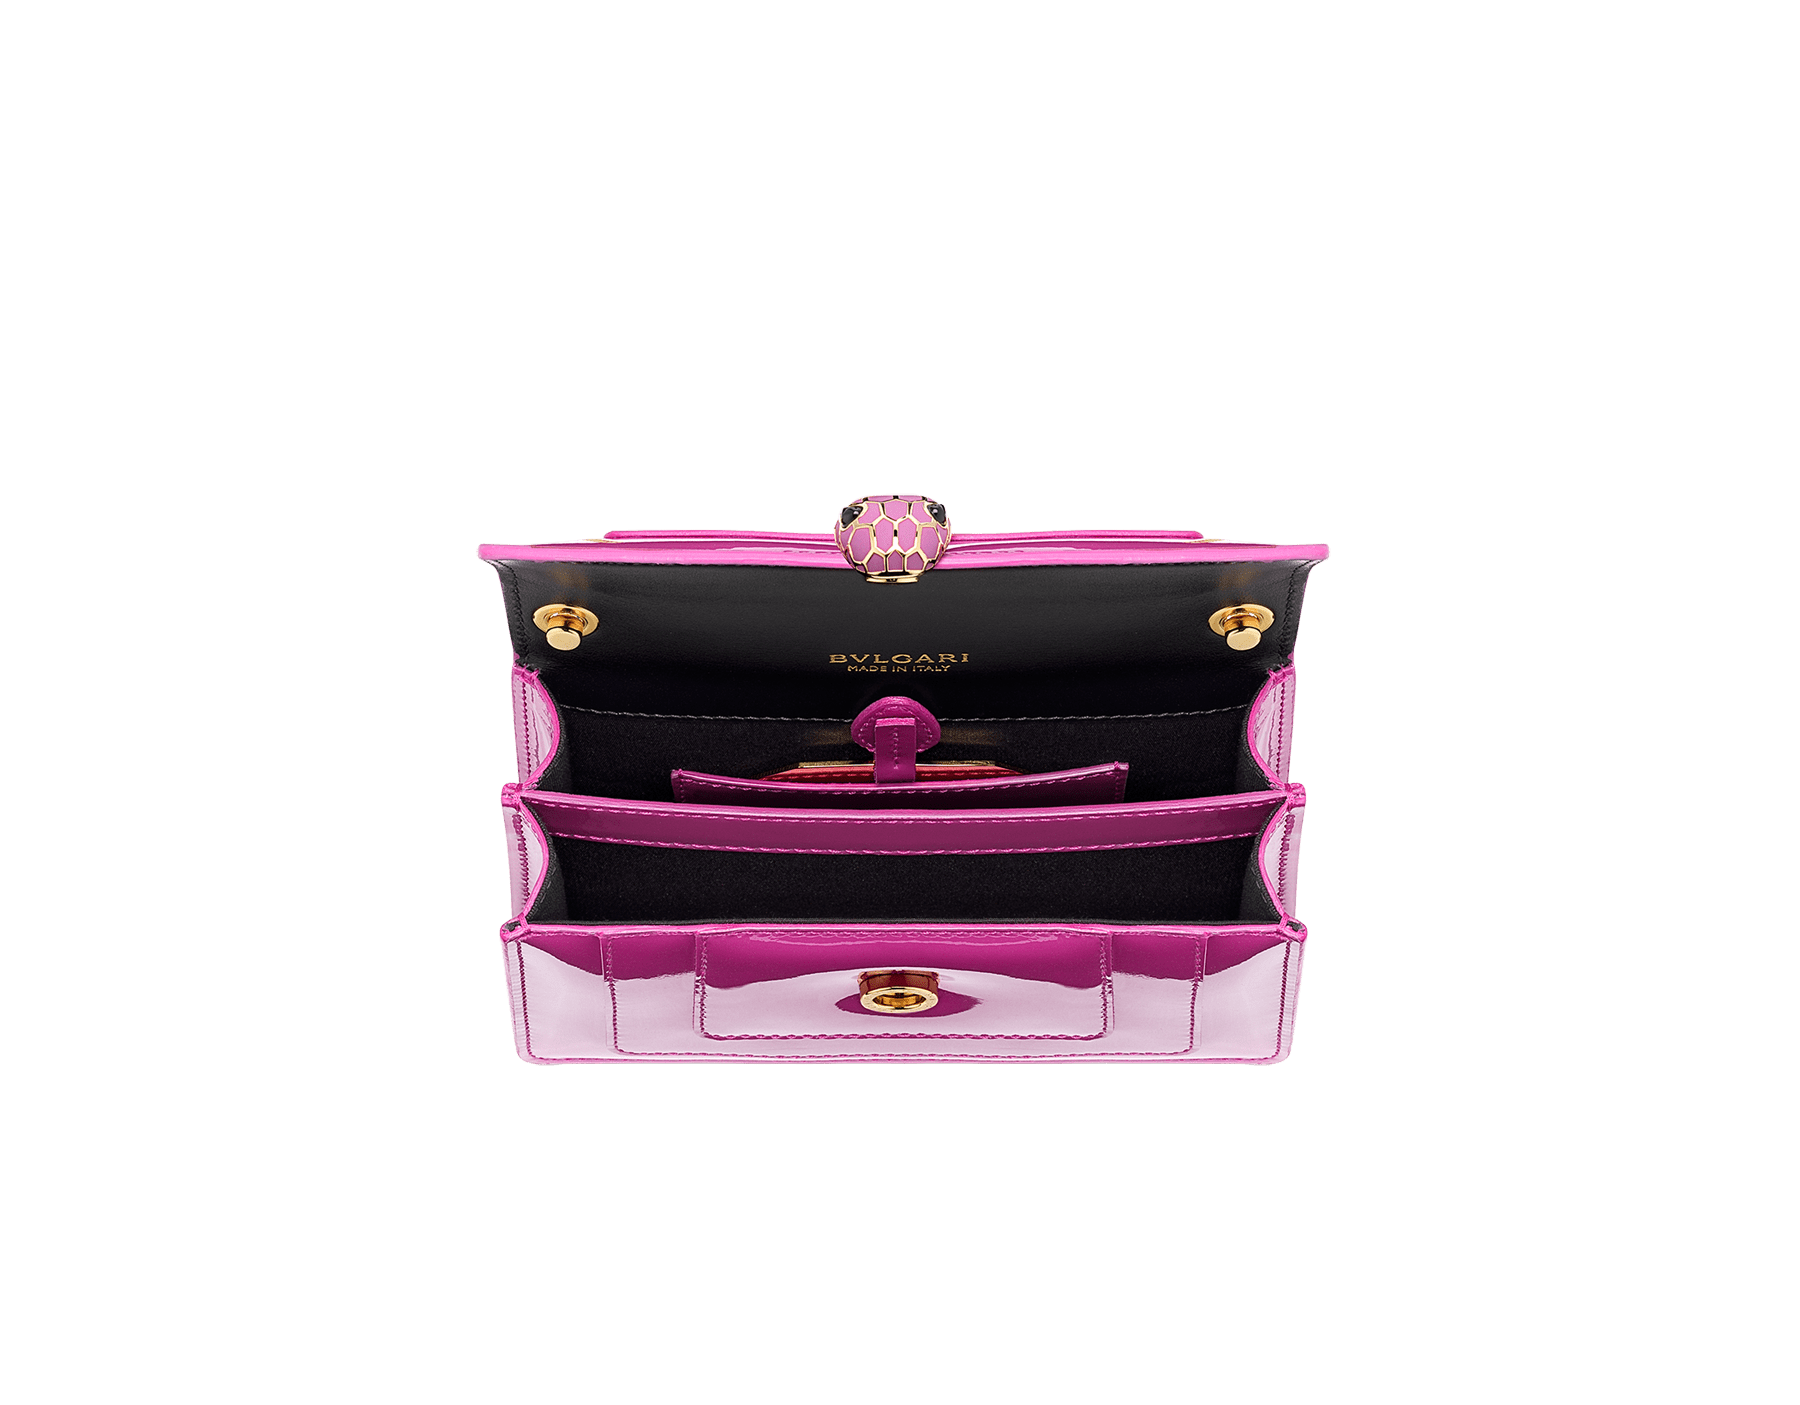 """Serpenti Forever"" crossbody mini bag in Magenta Spinel purple with a varnished and pearled effect, and black gros grain internal lining. Brass gold plated snakehead closure in full matte Magenta Spinel purple enamel, with black onyx eyes. Chinese New Year Special Edition. 986-VCL image 4"